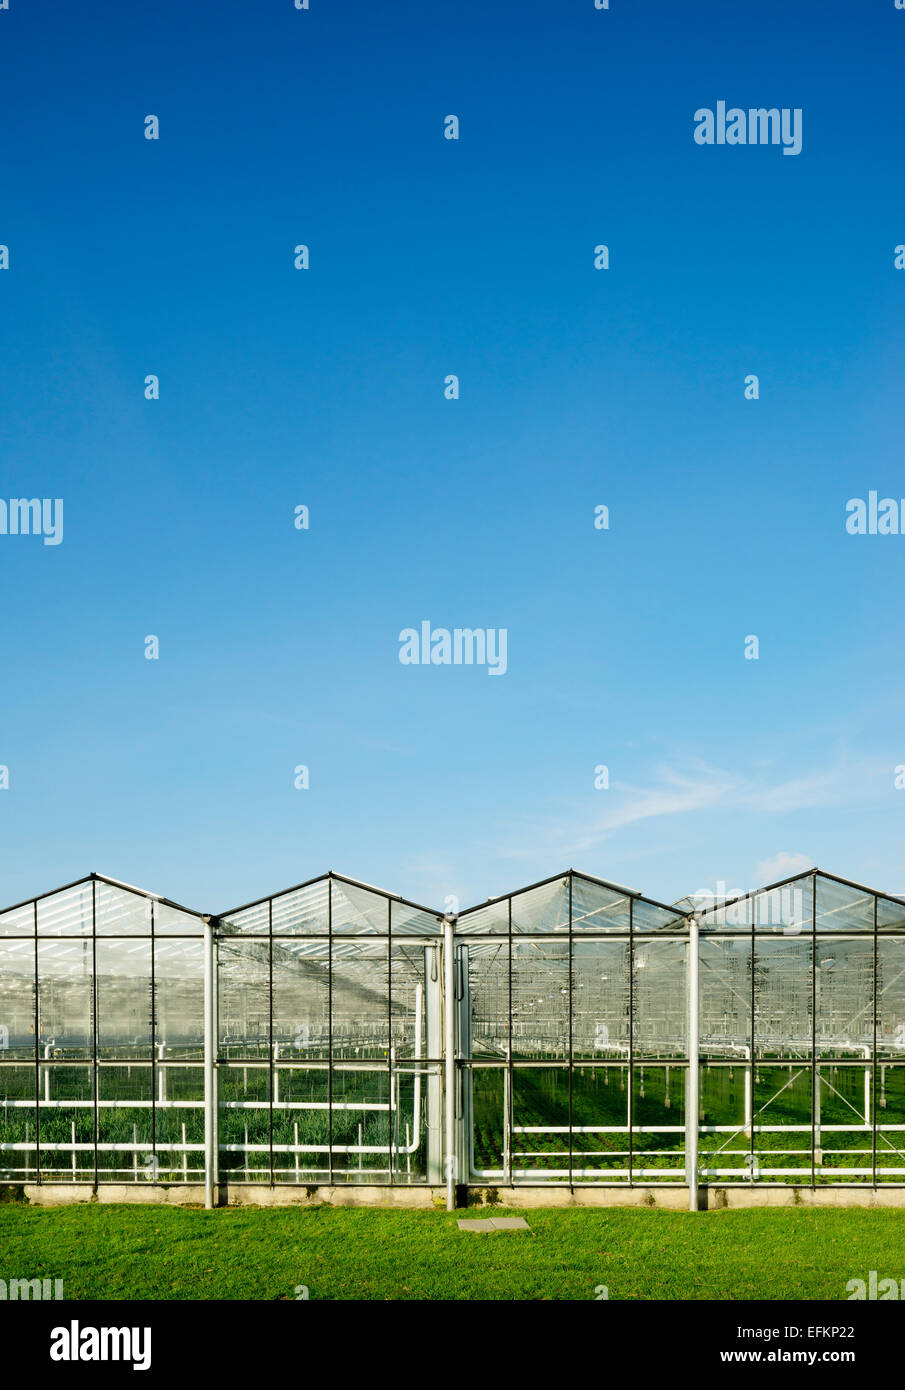 Row of greenhouses and blue sky - Stock Image